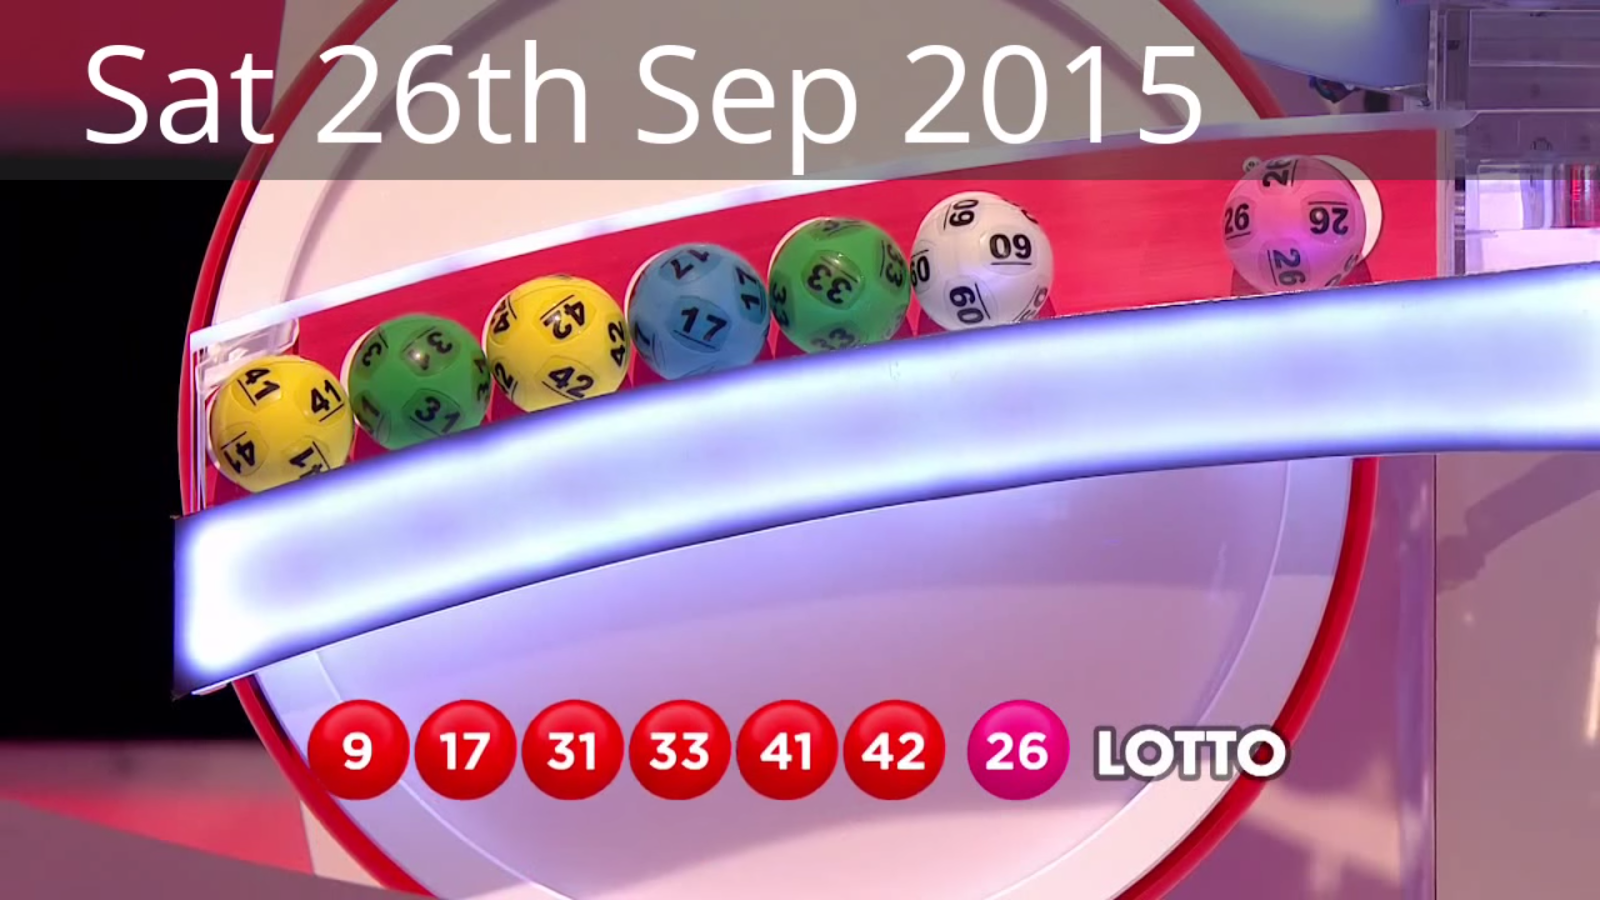 The National Lottery 'Lotto' draw results from Saturday 26th September 2015: 9,17,31,33,41,42; bonus 26